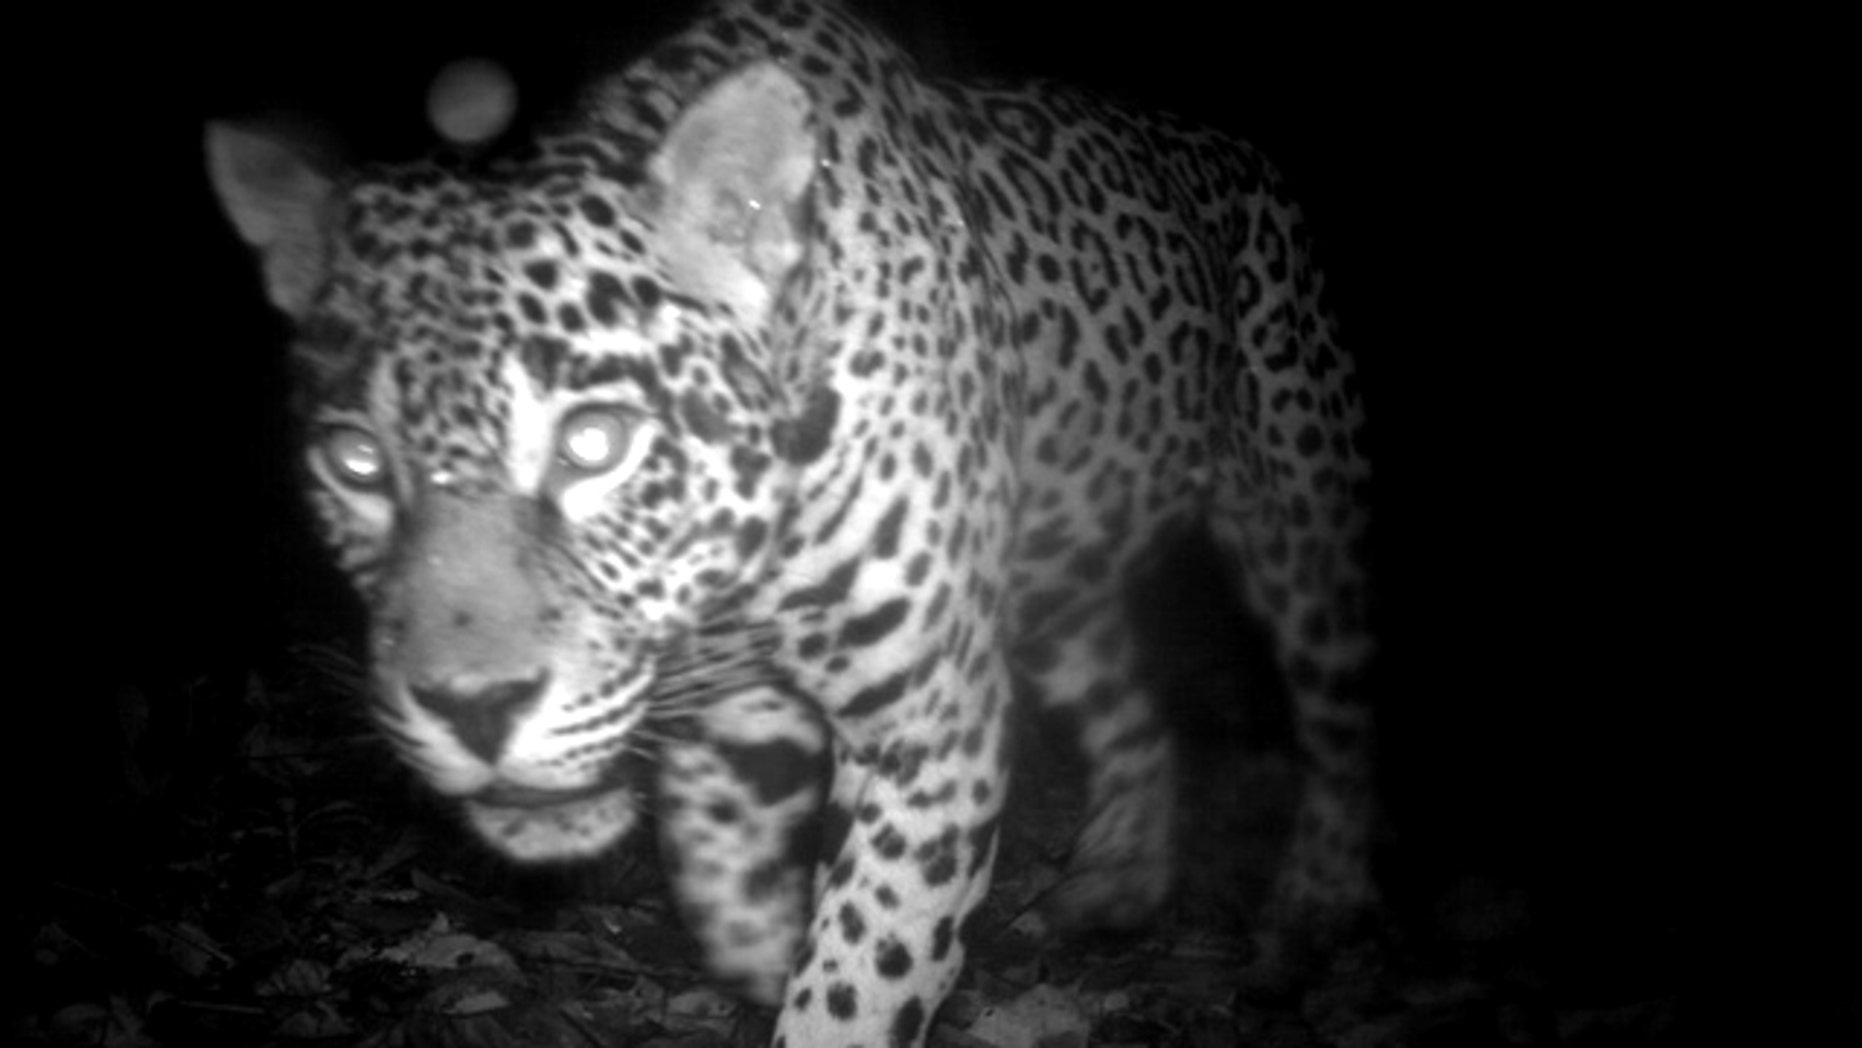 """A Panthera Onca (Jaguar), a near threatened species, spotted on """"candid camera"""" in the Central Suriname Nature Reserve, Suriname."""